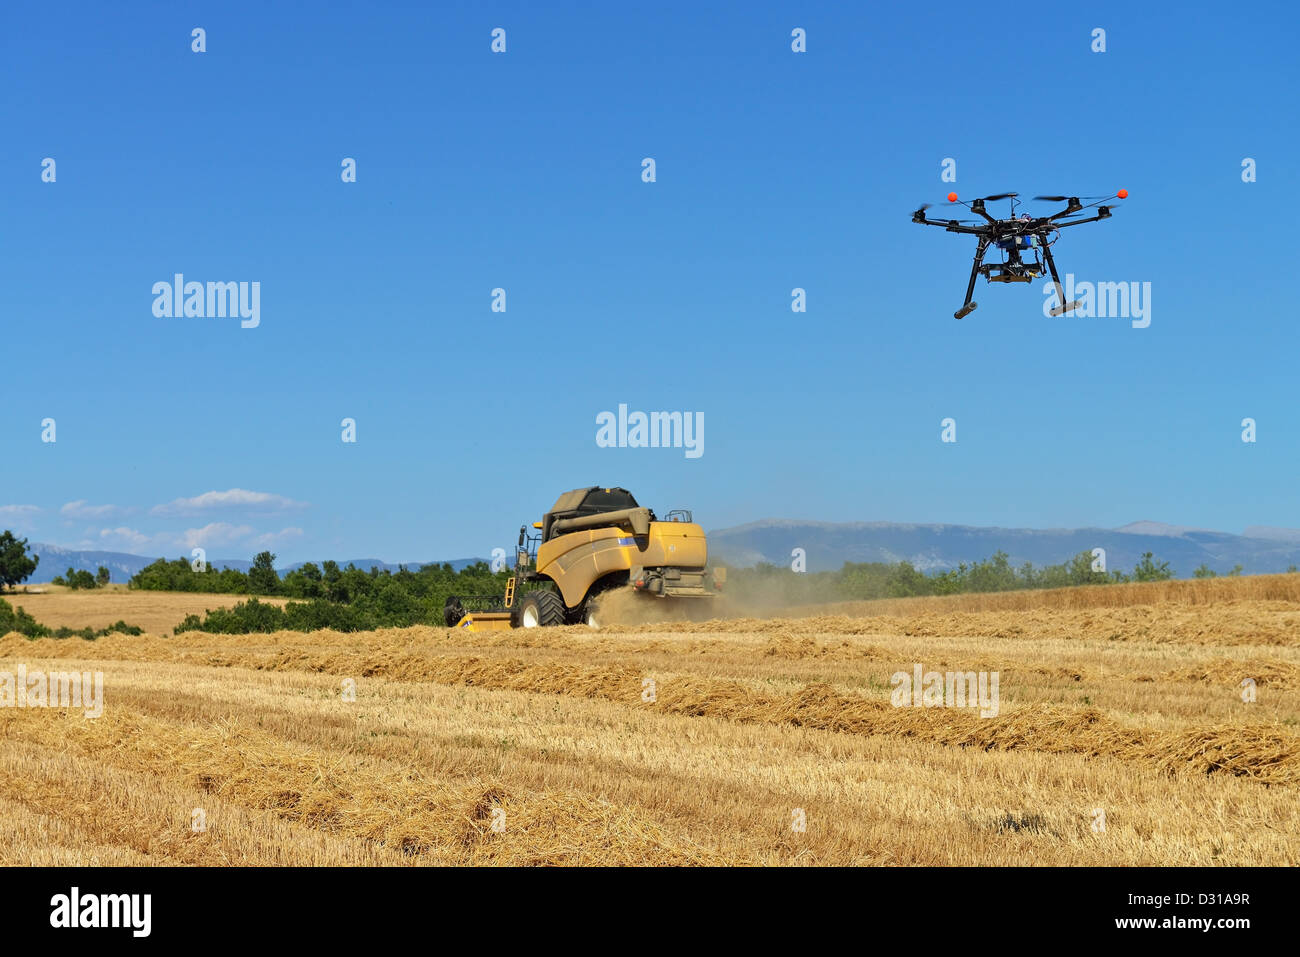 Drone - Unmanned Aerial Vehicle (UAV) photographing / filming combine harvester in wheat field in summer , France - Stock Image